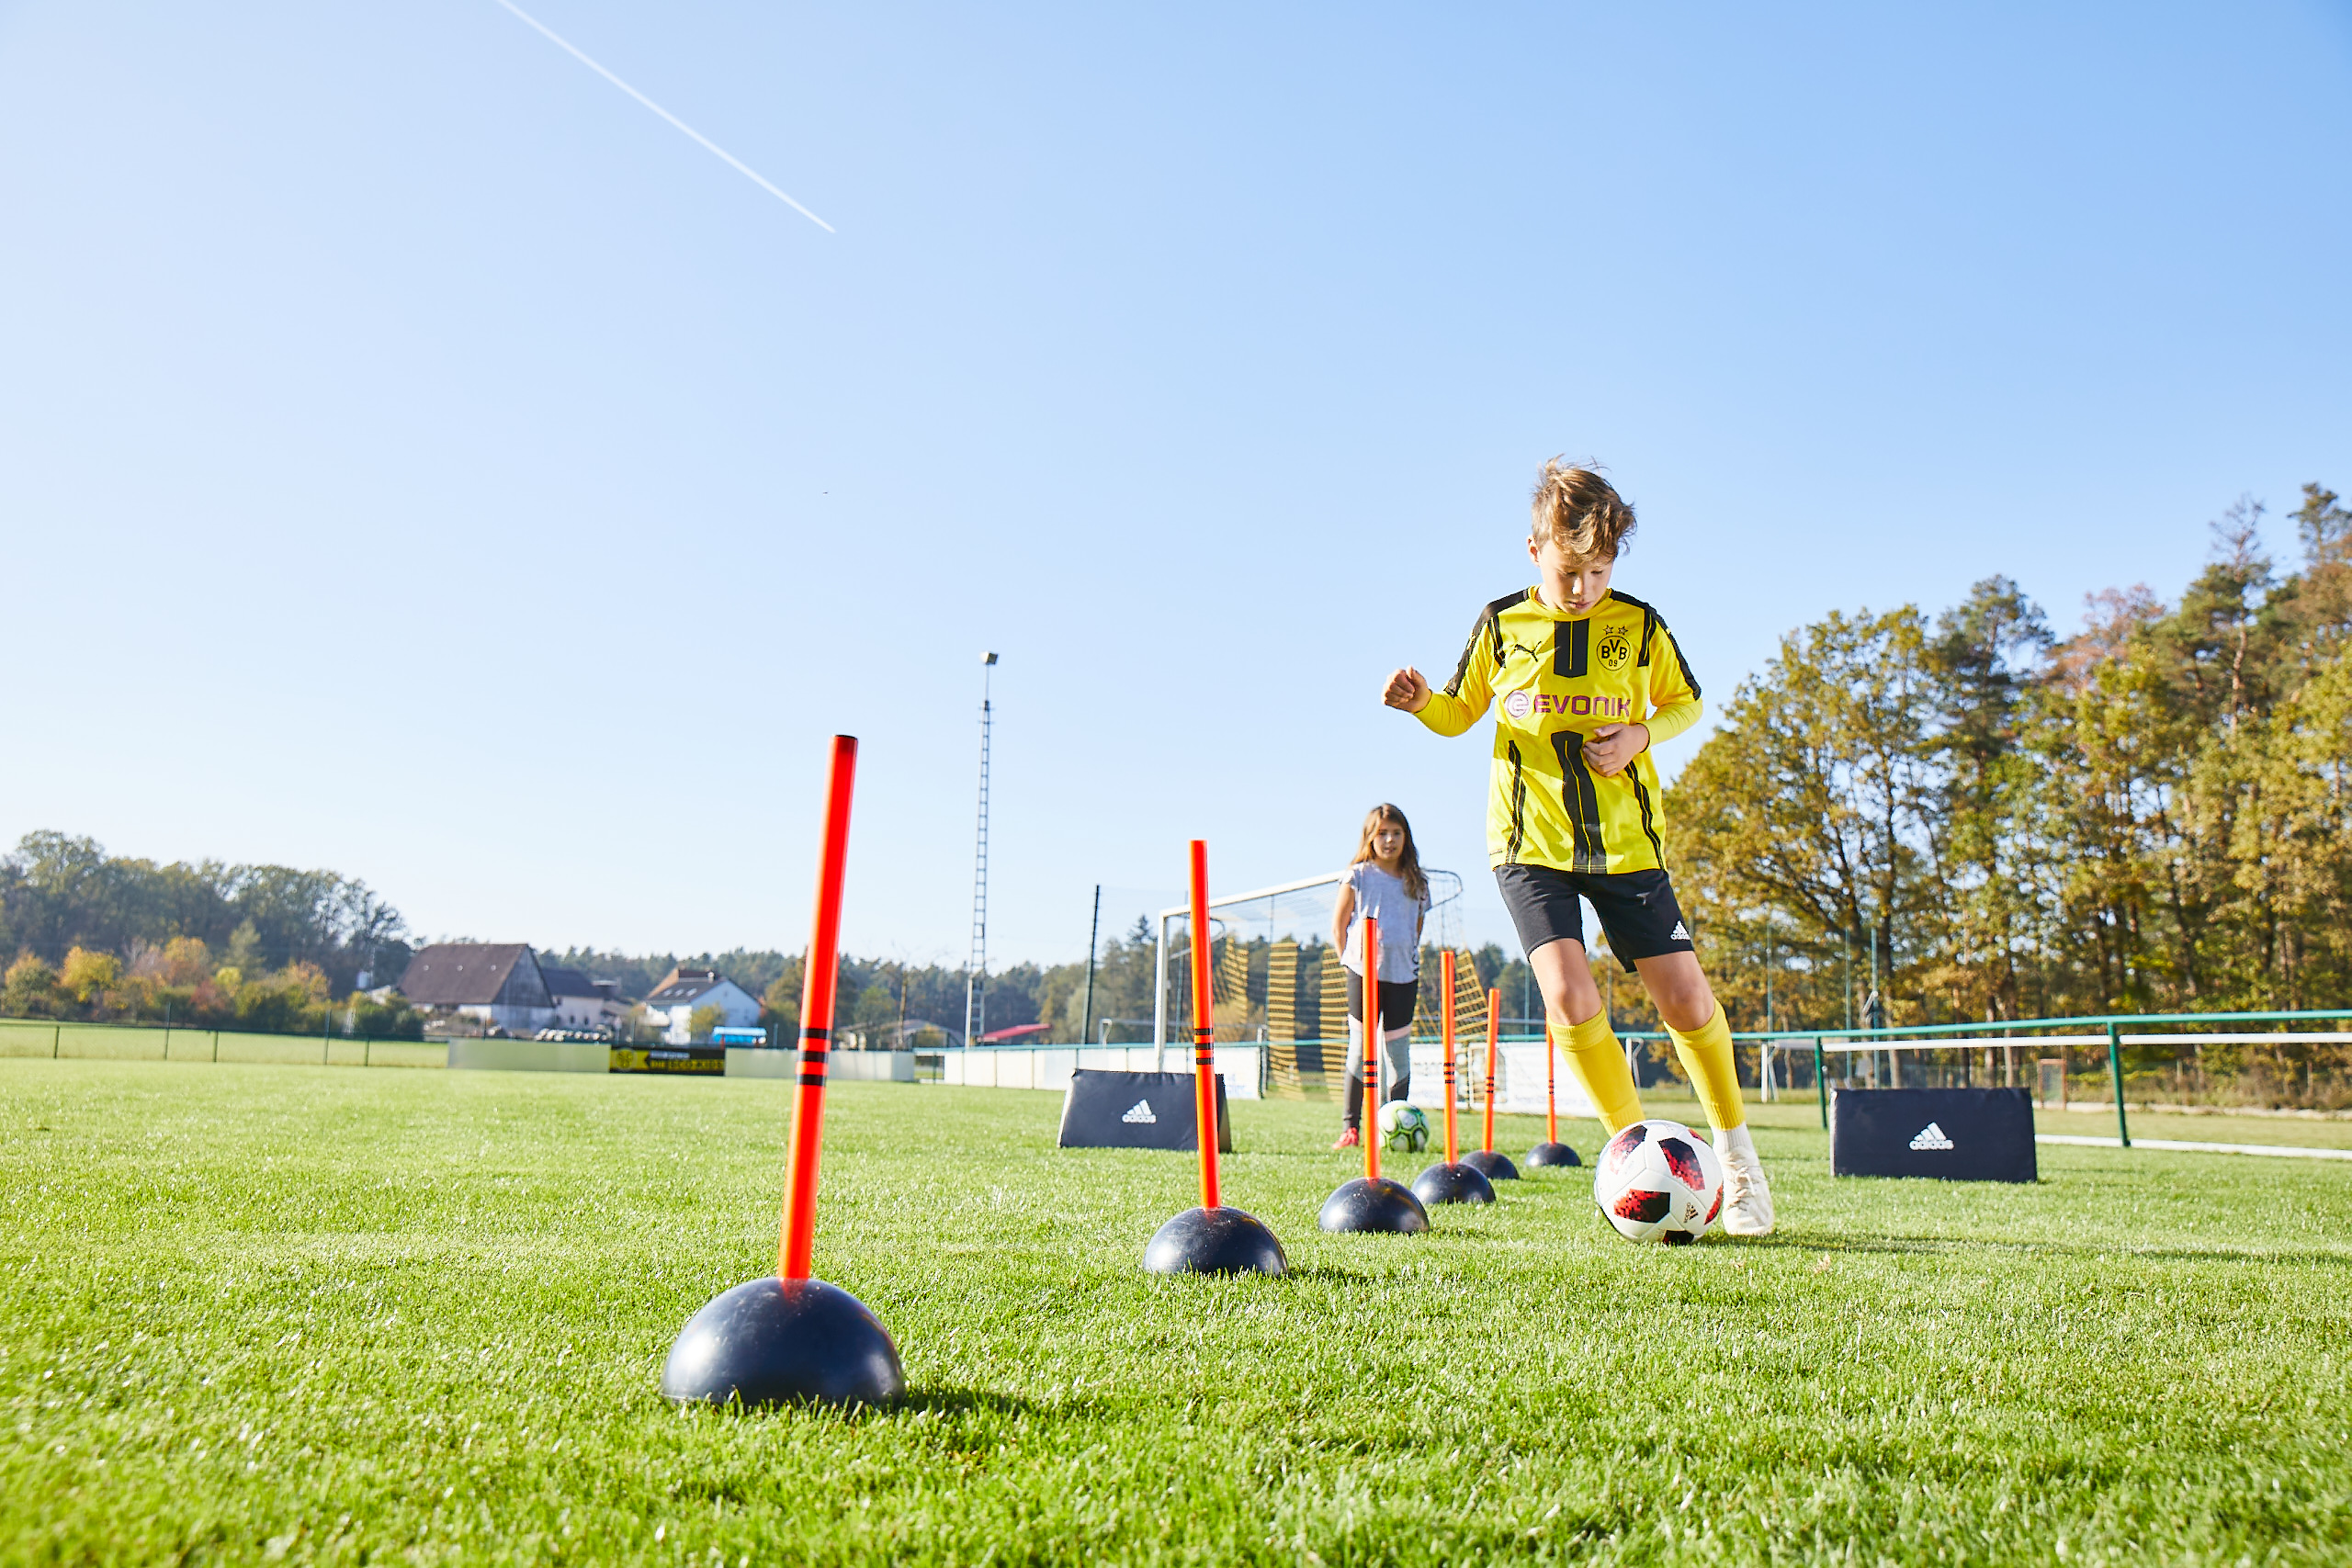 Fussball_Kids_0470